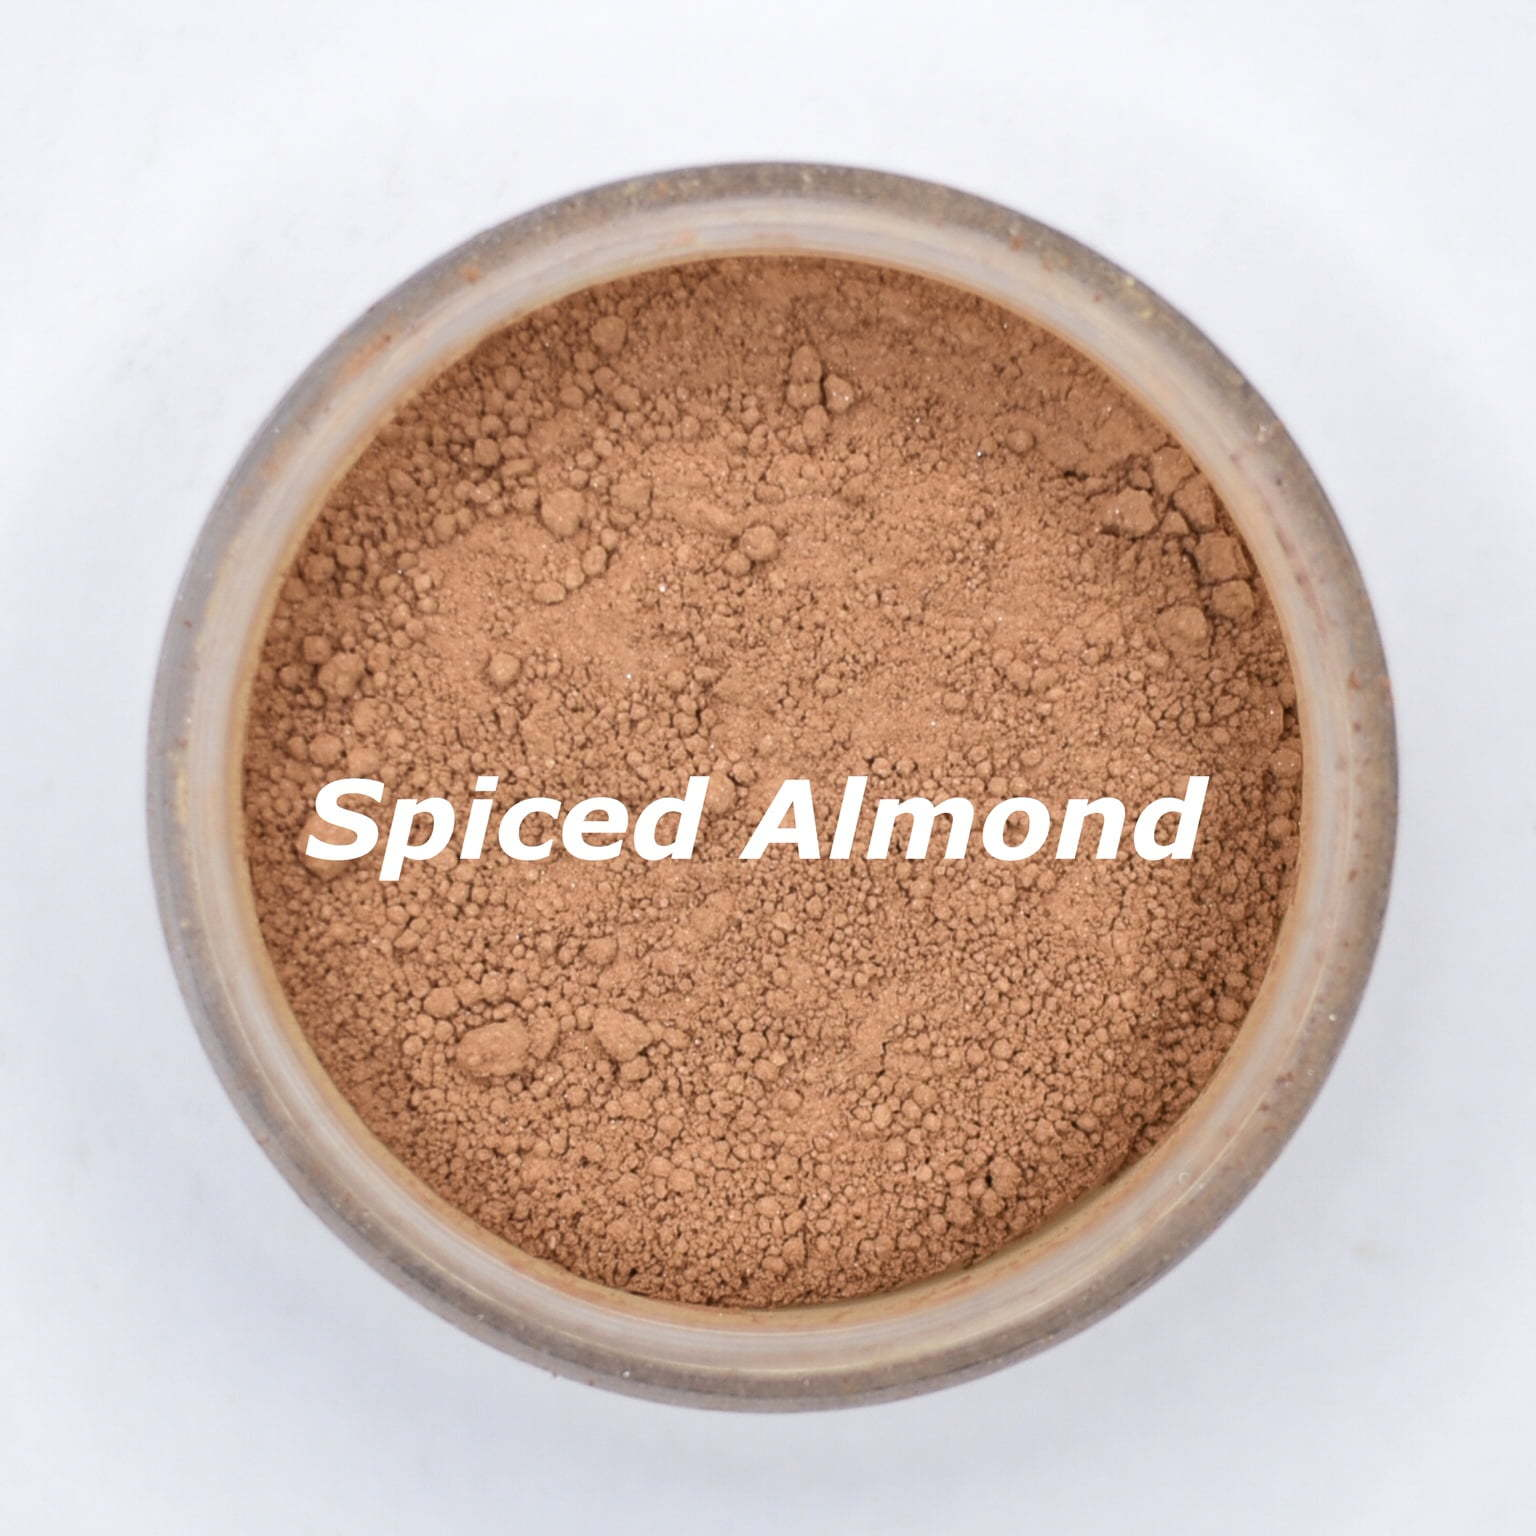 spiced almond foundation shade